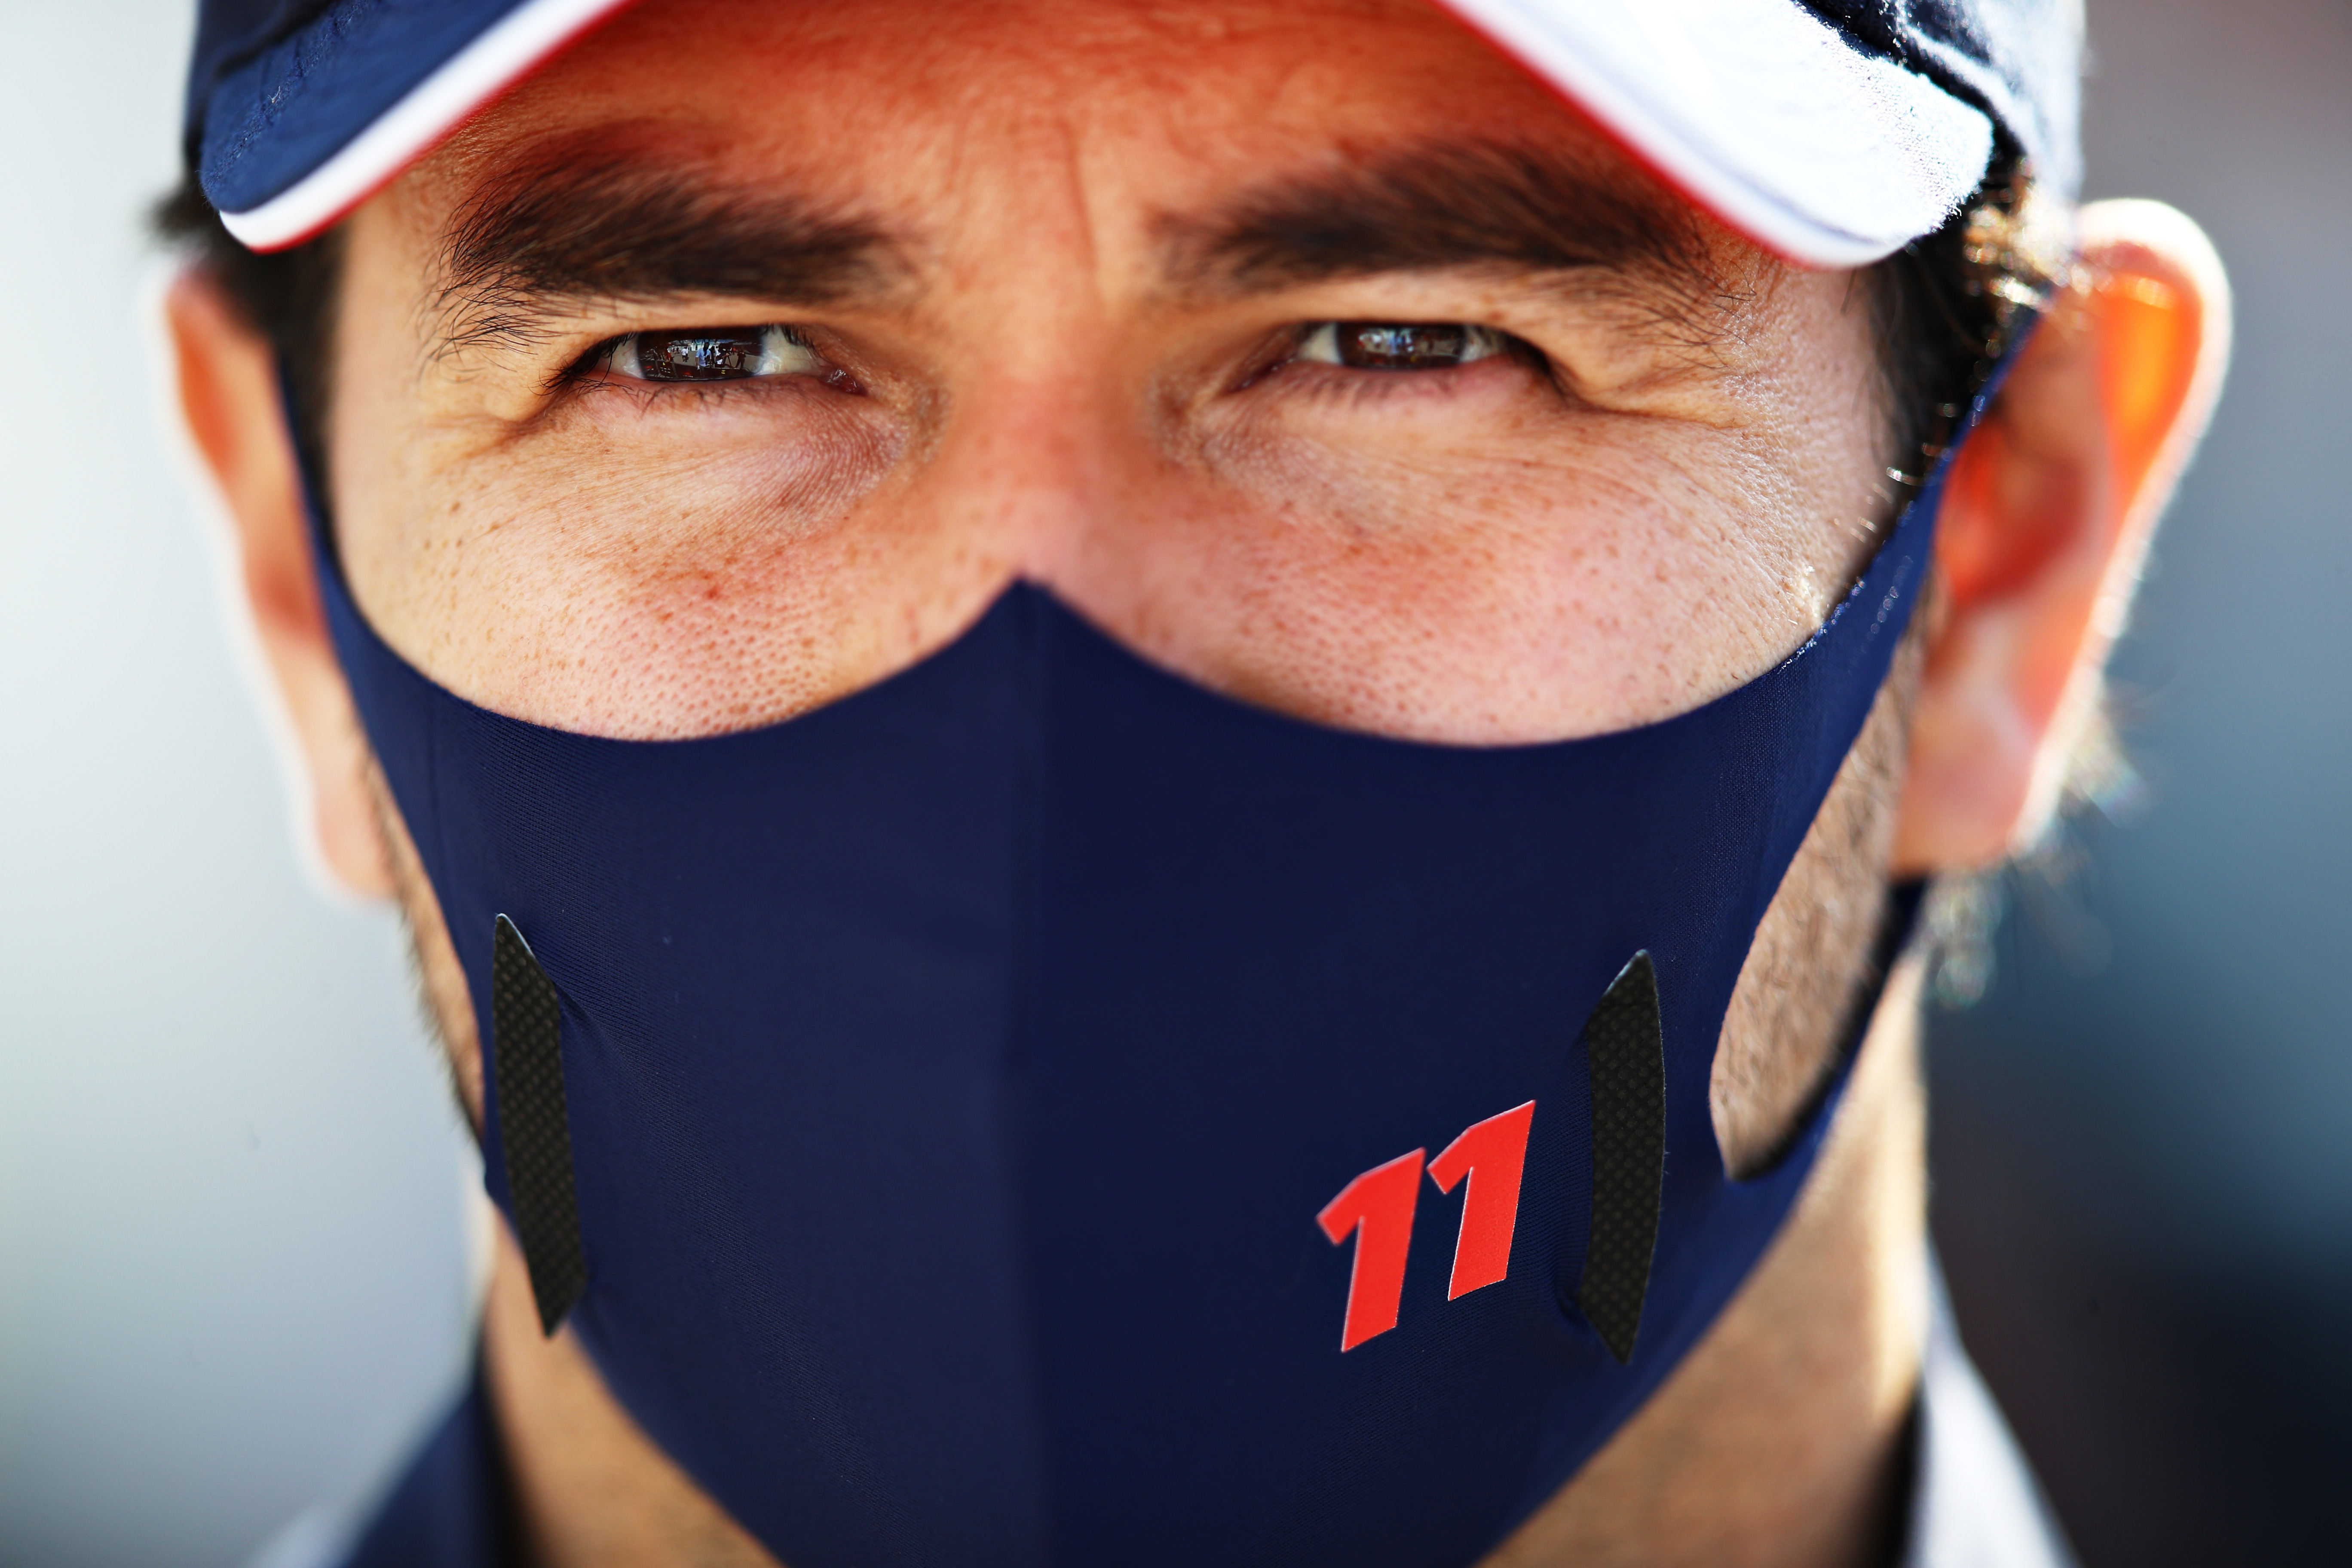 Sergio Perez of Red Bull Racing looks on ahead of the F1 Grand Prix of Portugal